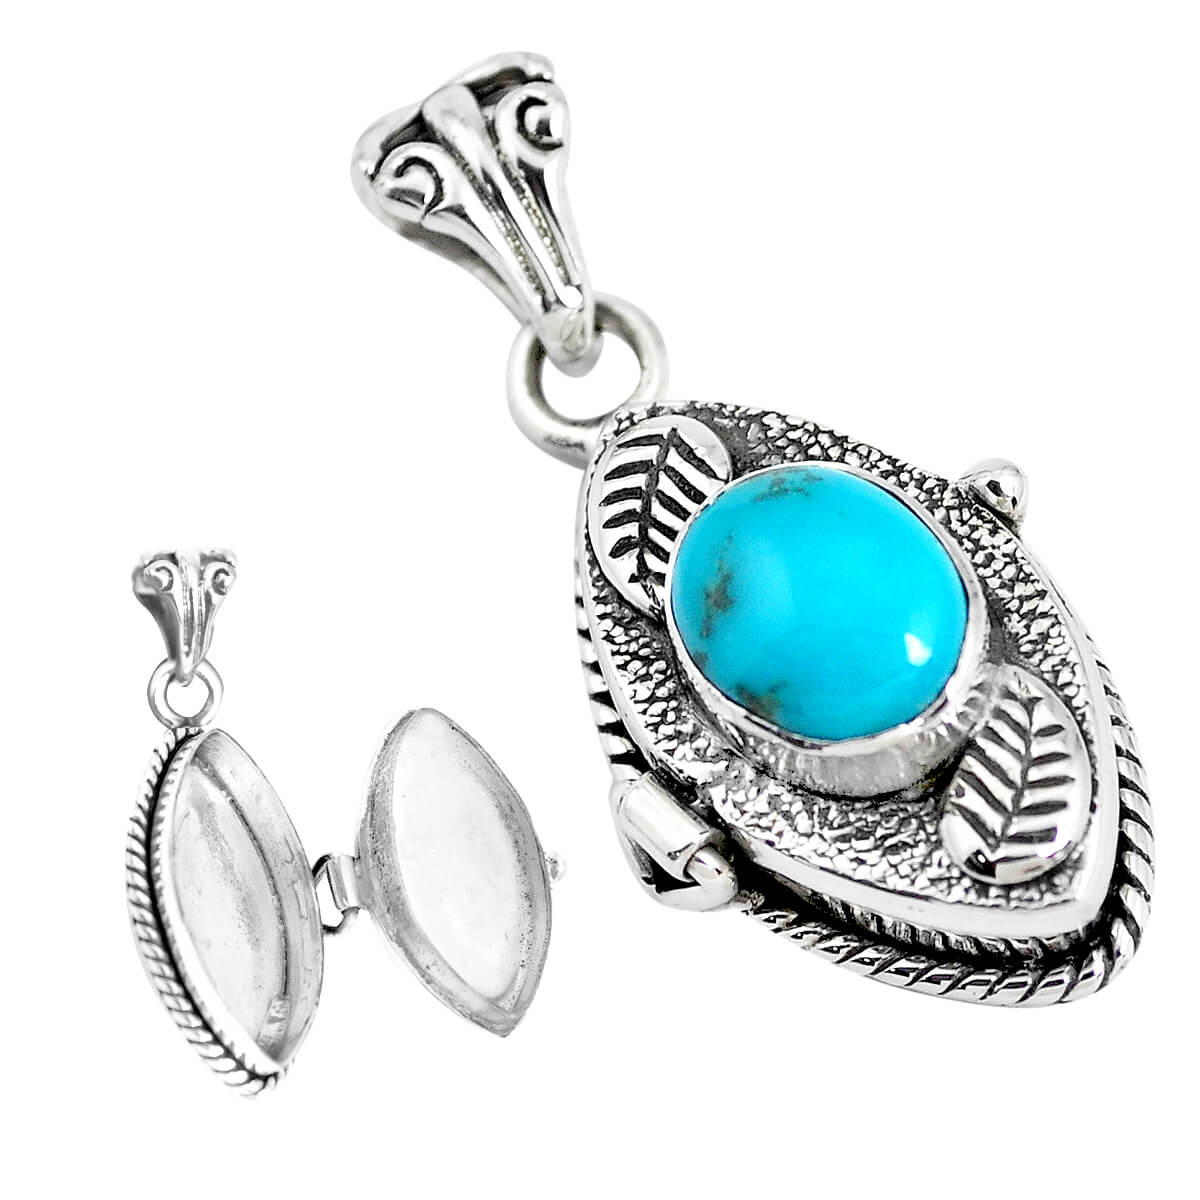 Sterling Silver Turquoise Secret Message Locket - 7.4 grams